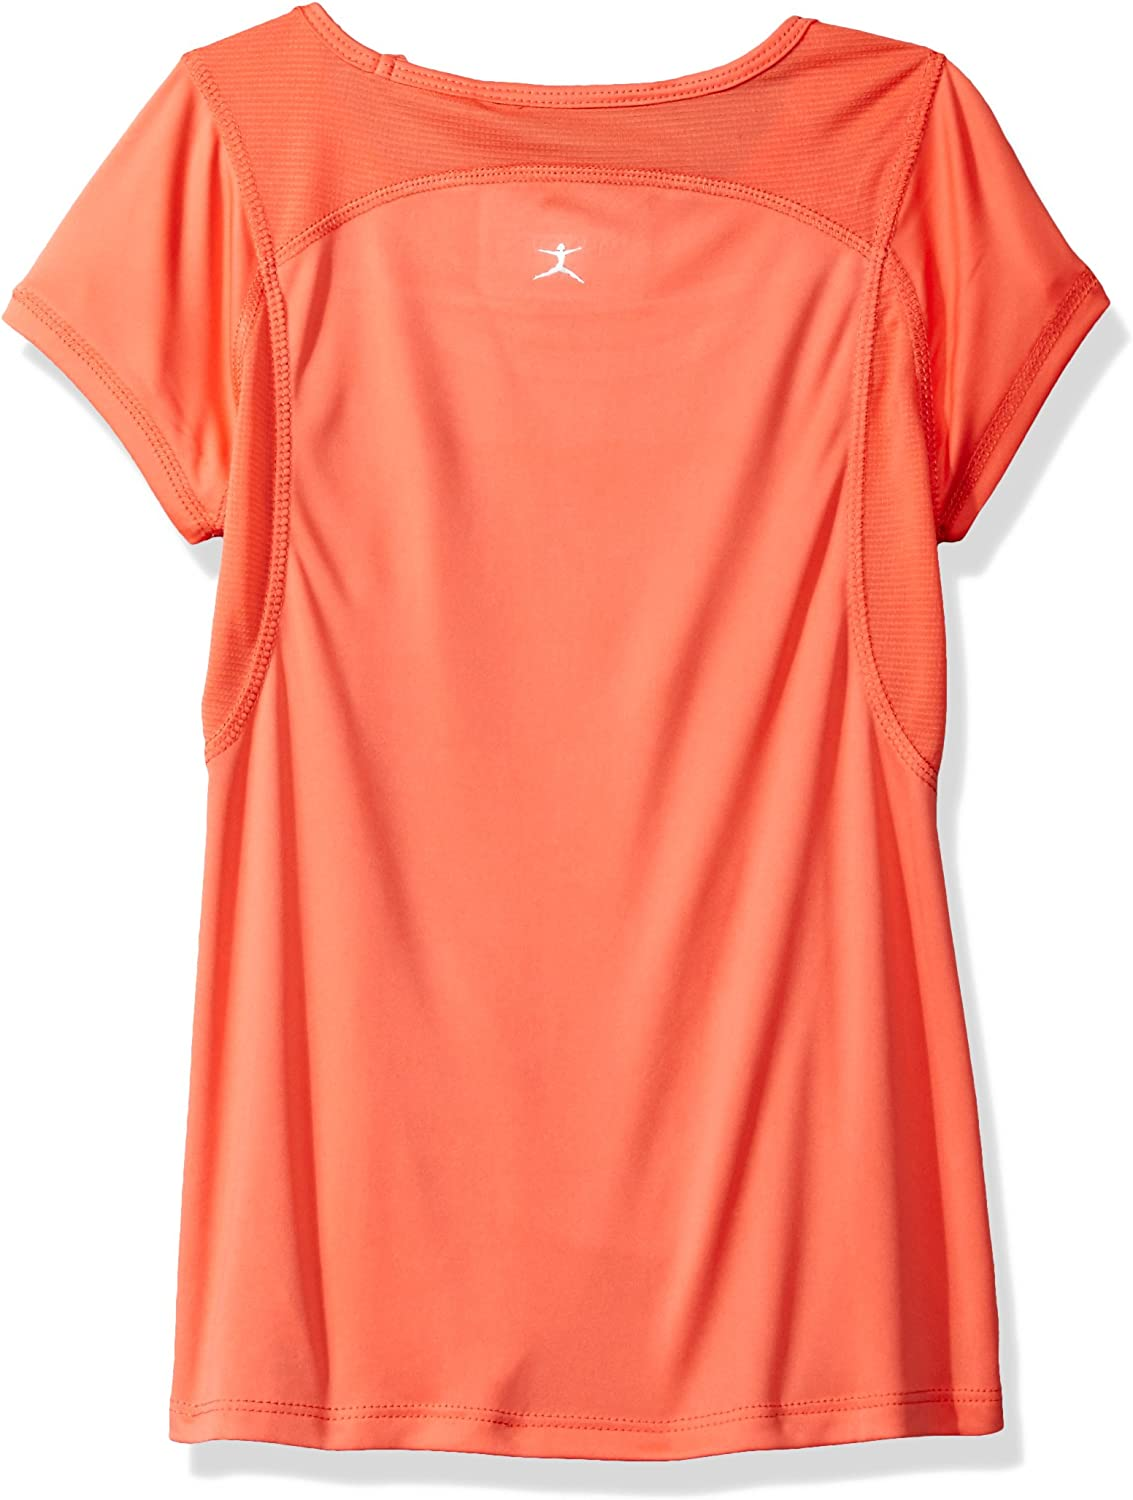 Danskin Girls Big Relay Performance Tee